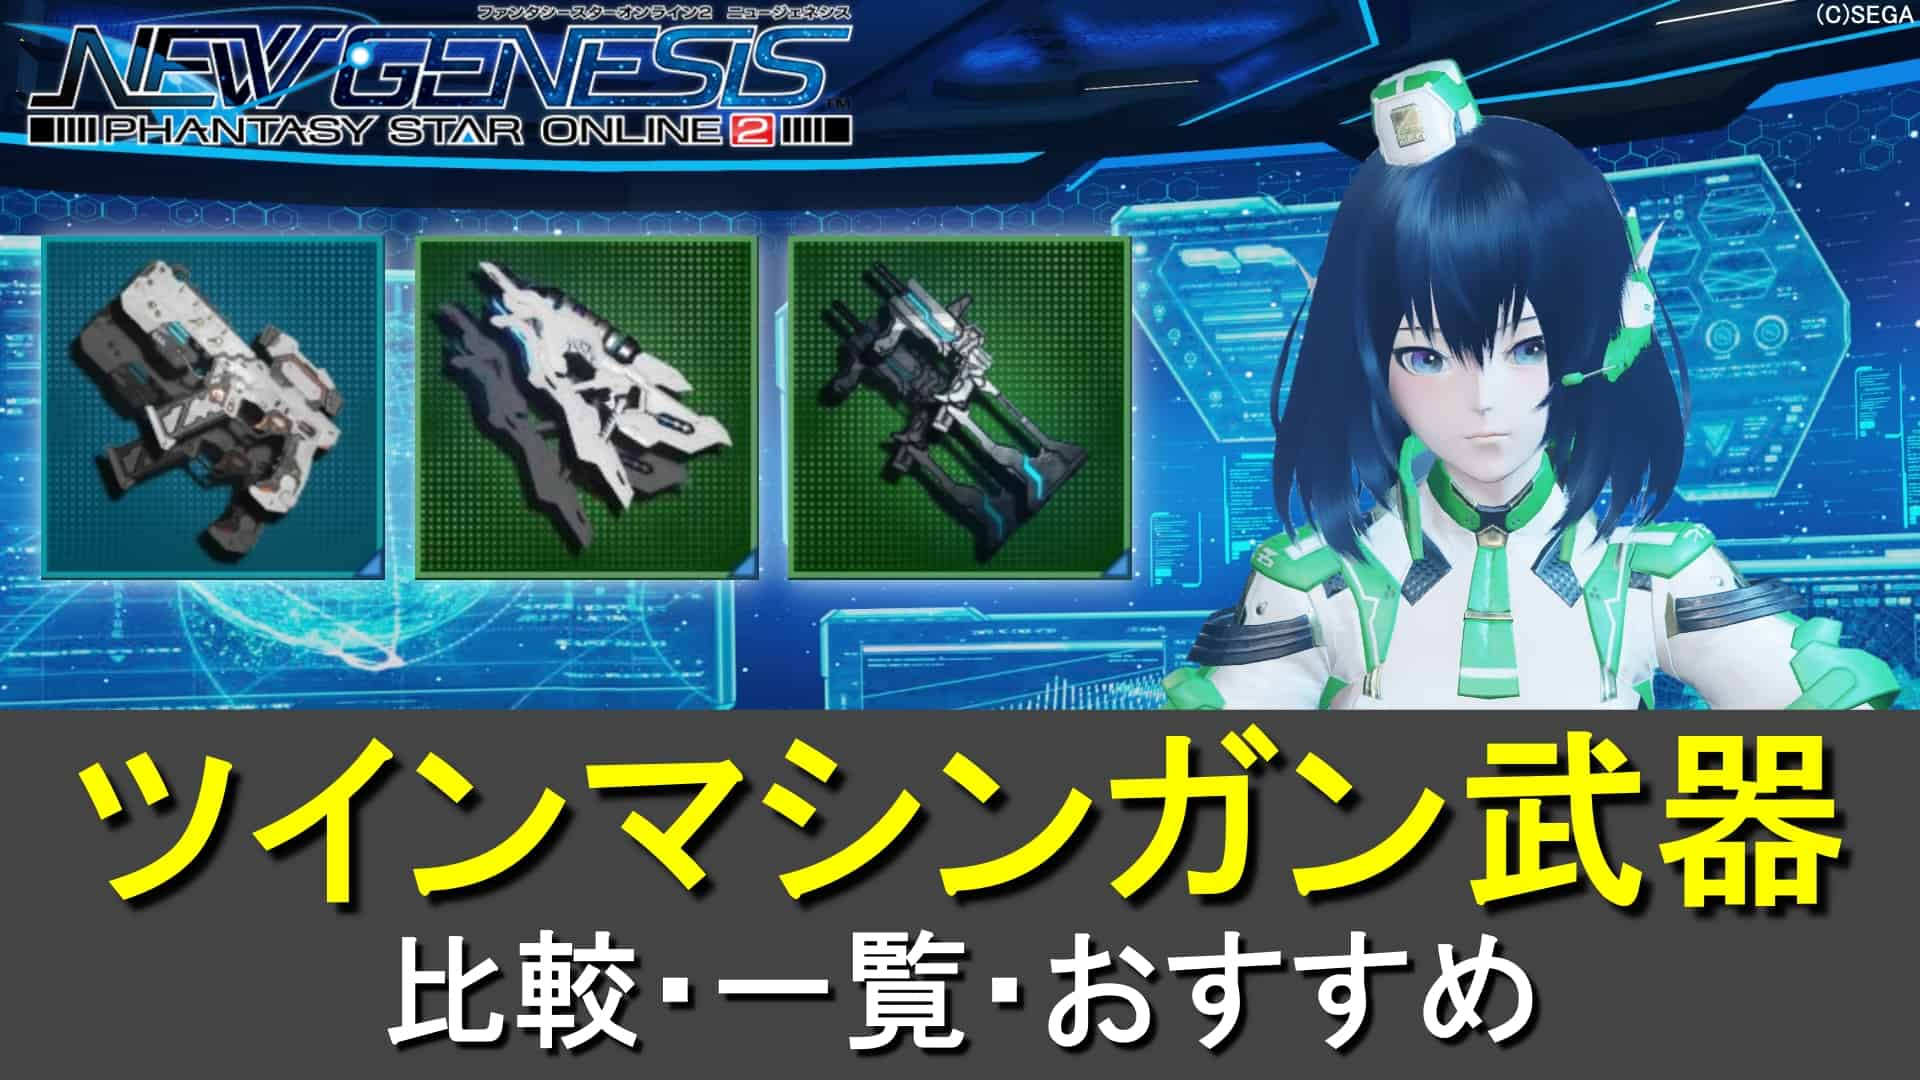 【PSO2NGS】ツインマシンガン武器の一覧、潜在まとめ